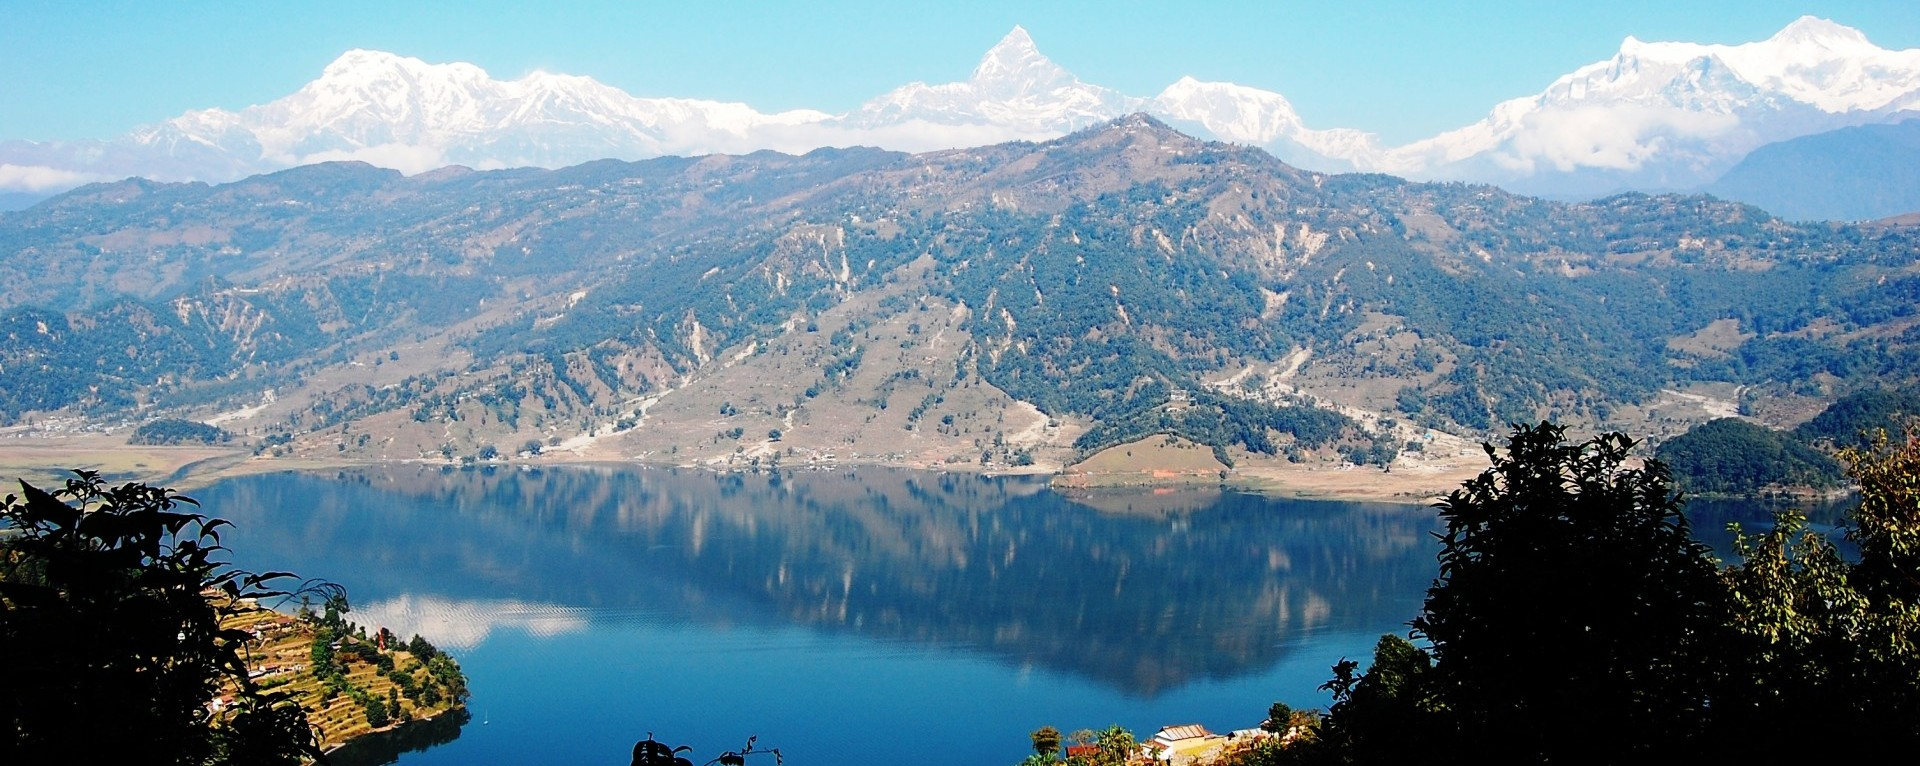 The view of Fewa lake and Annapurna mountain ranges from World Peace Stupa.